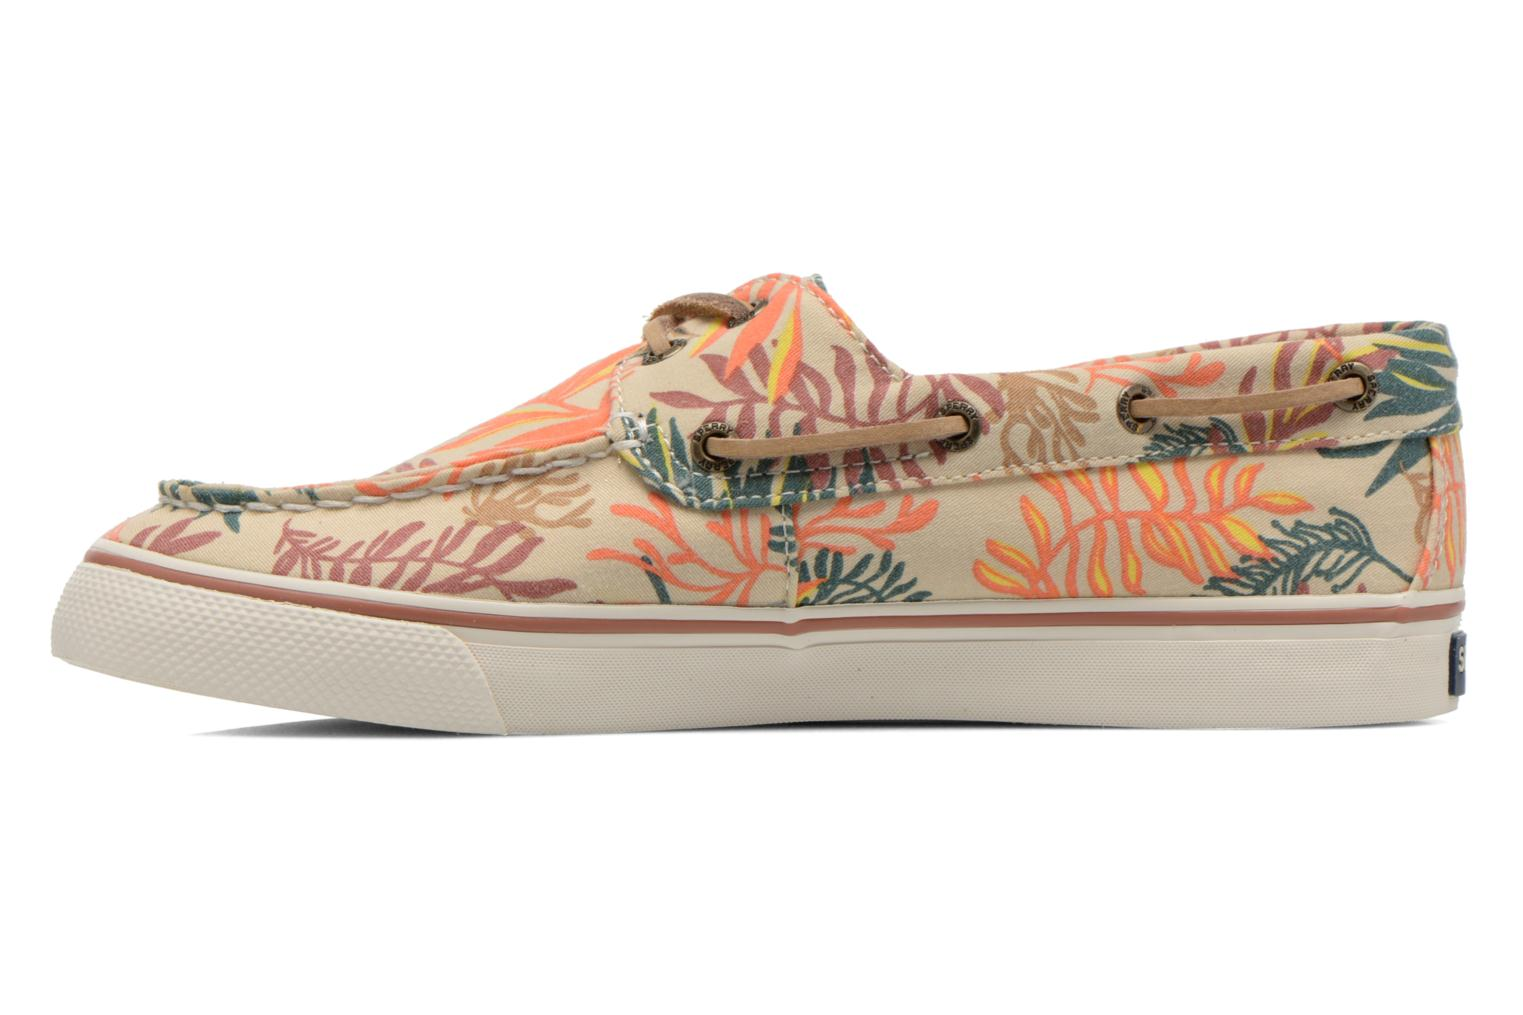 Chaussures à lacets Sperry Bahama Seaweed Print Multicolore vue face